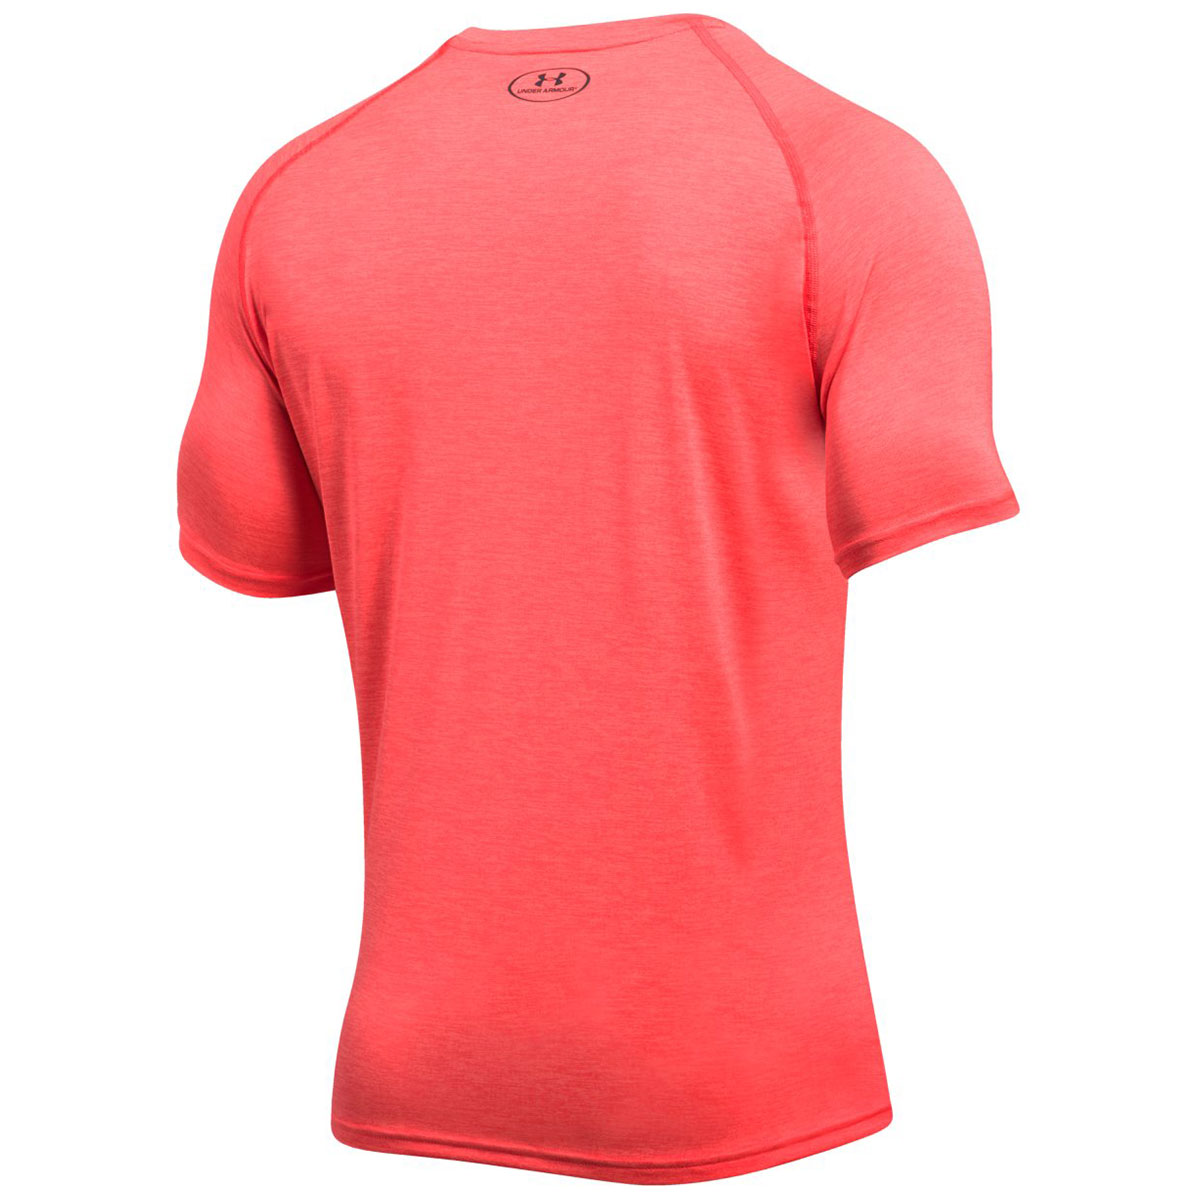 Under-Armour-Mens-UA-Tech-SS-T-Shirt-HeatGear-Training-31-OFF-RRP thumbnail 57